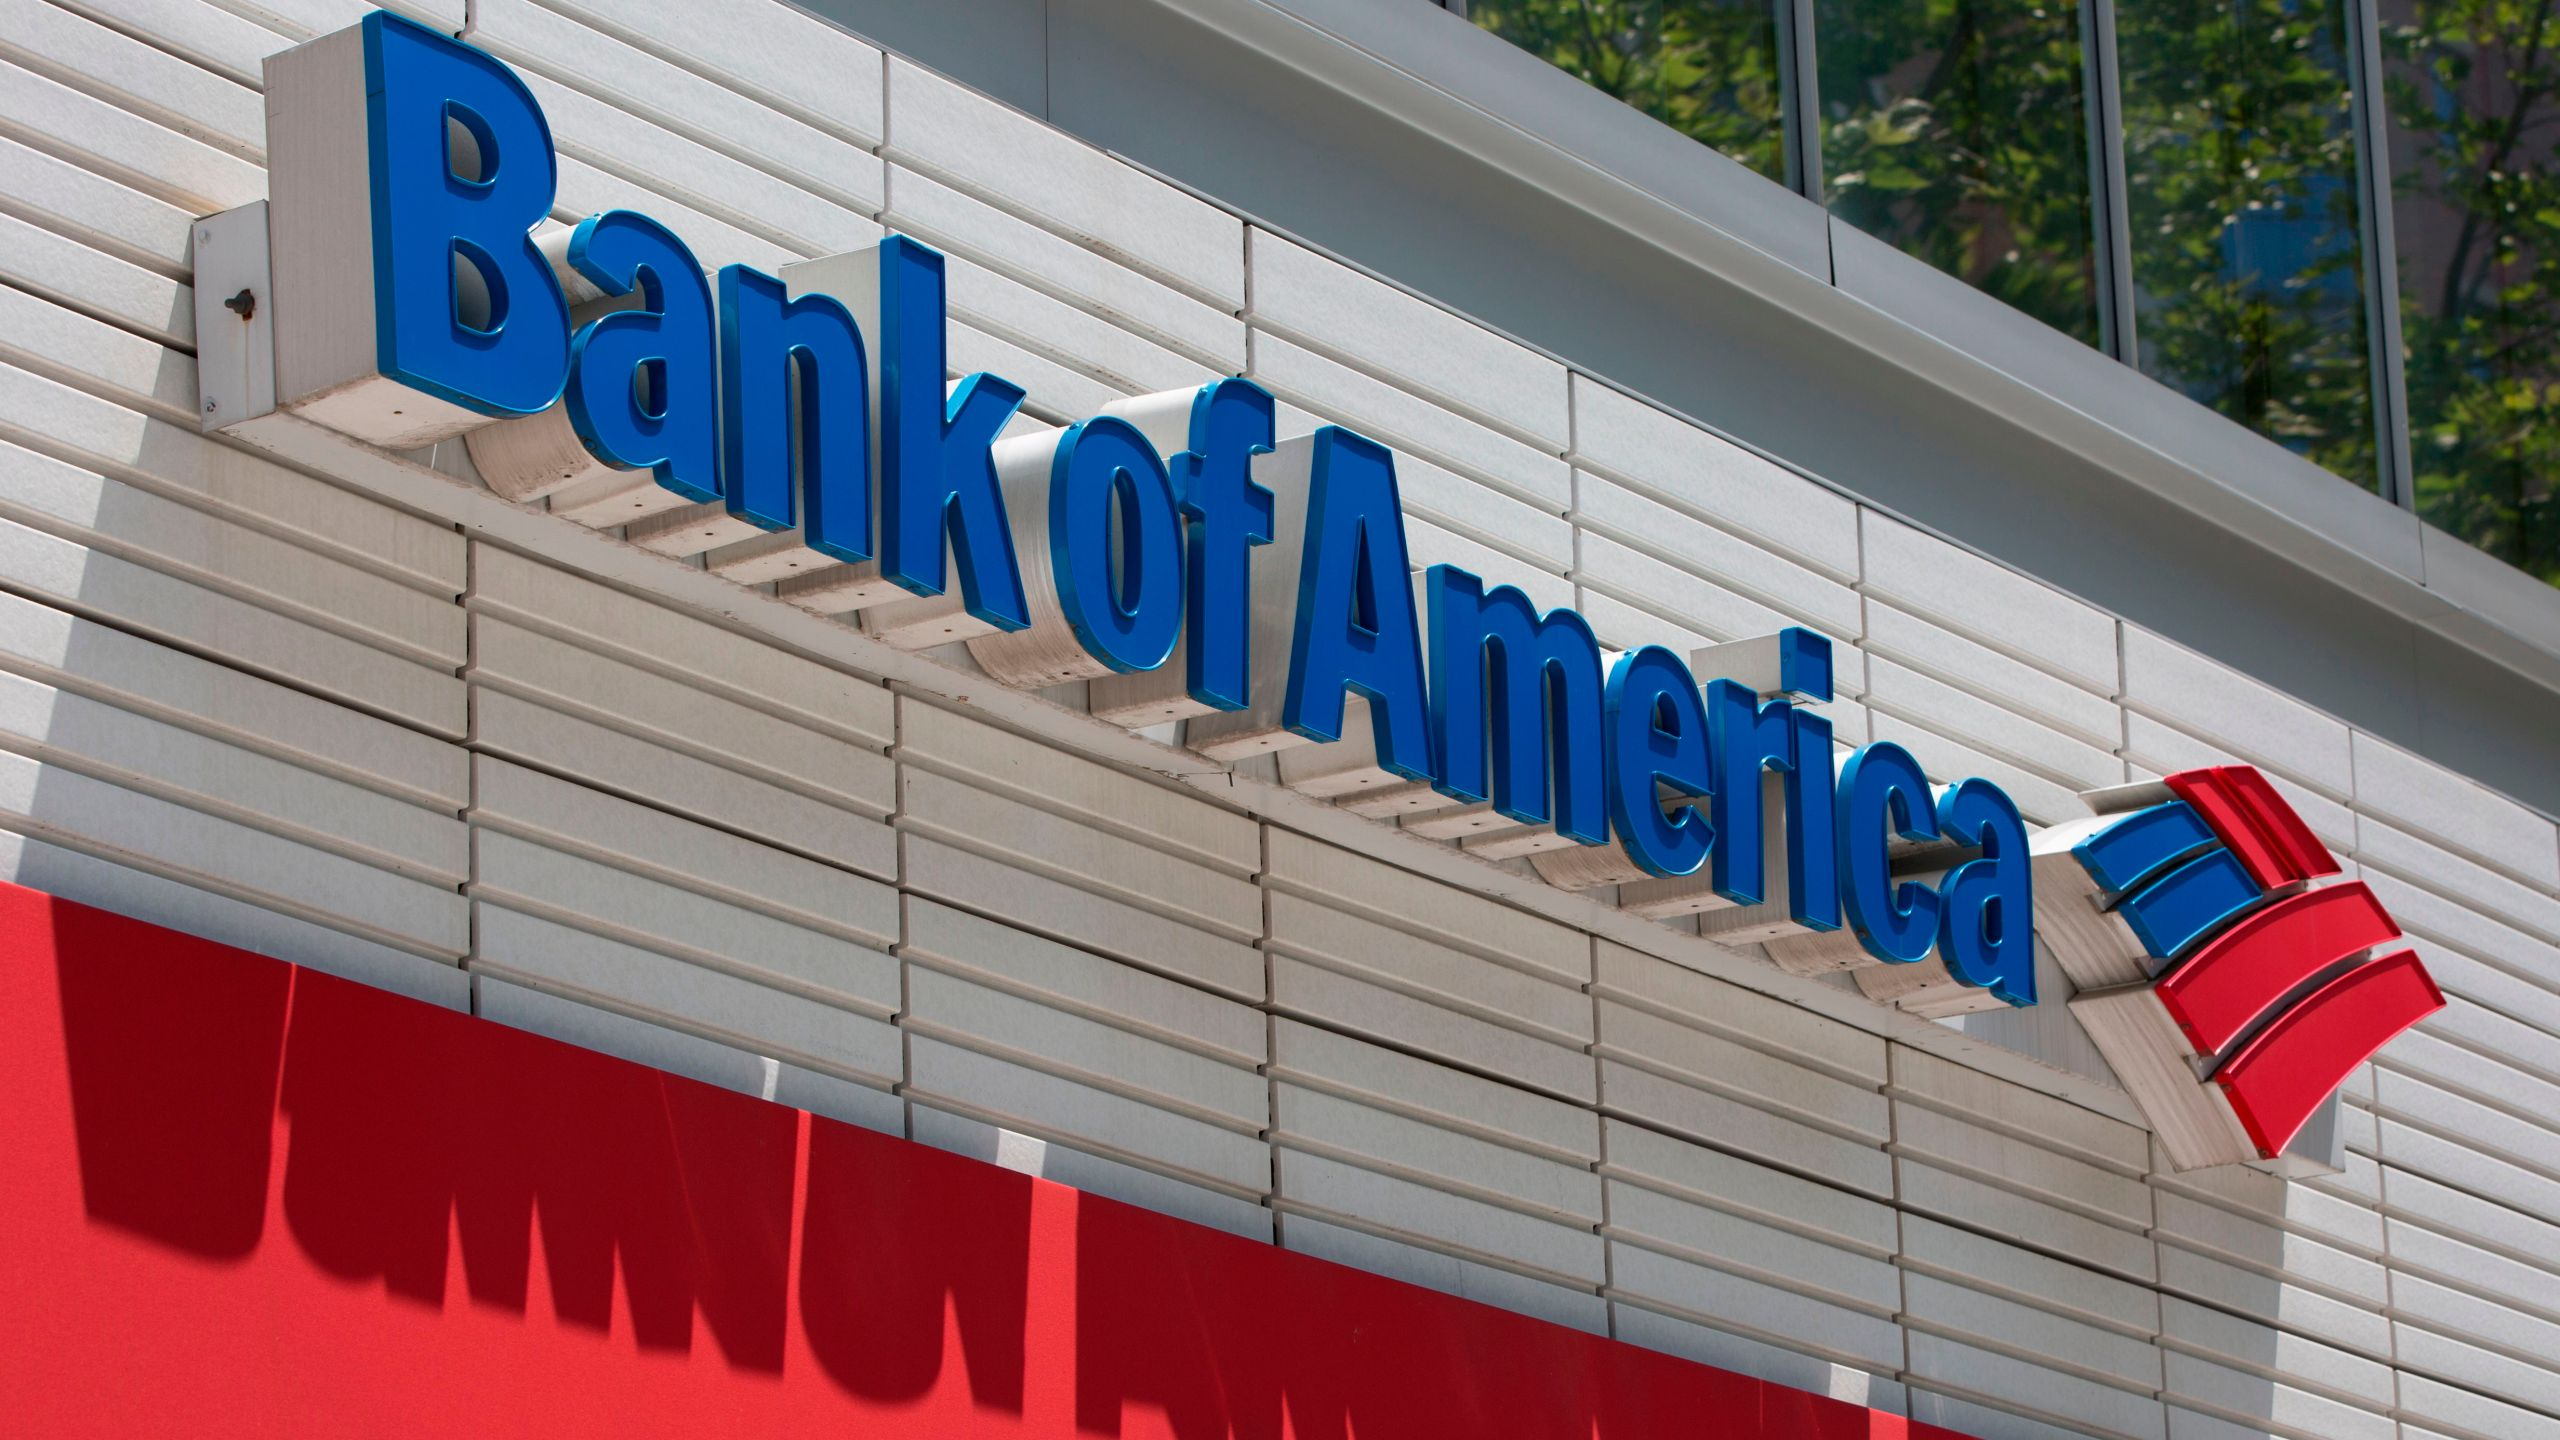 The Bank of America logo is seen outside a branch in Washington, DC, on July 9, 2019. (ALASTAIR PIKE/AFP via Getty Images)